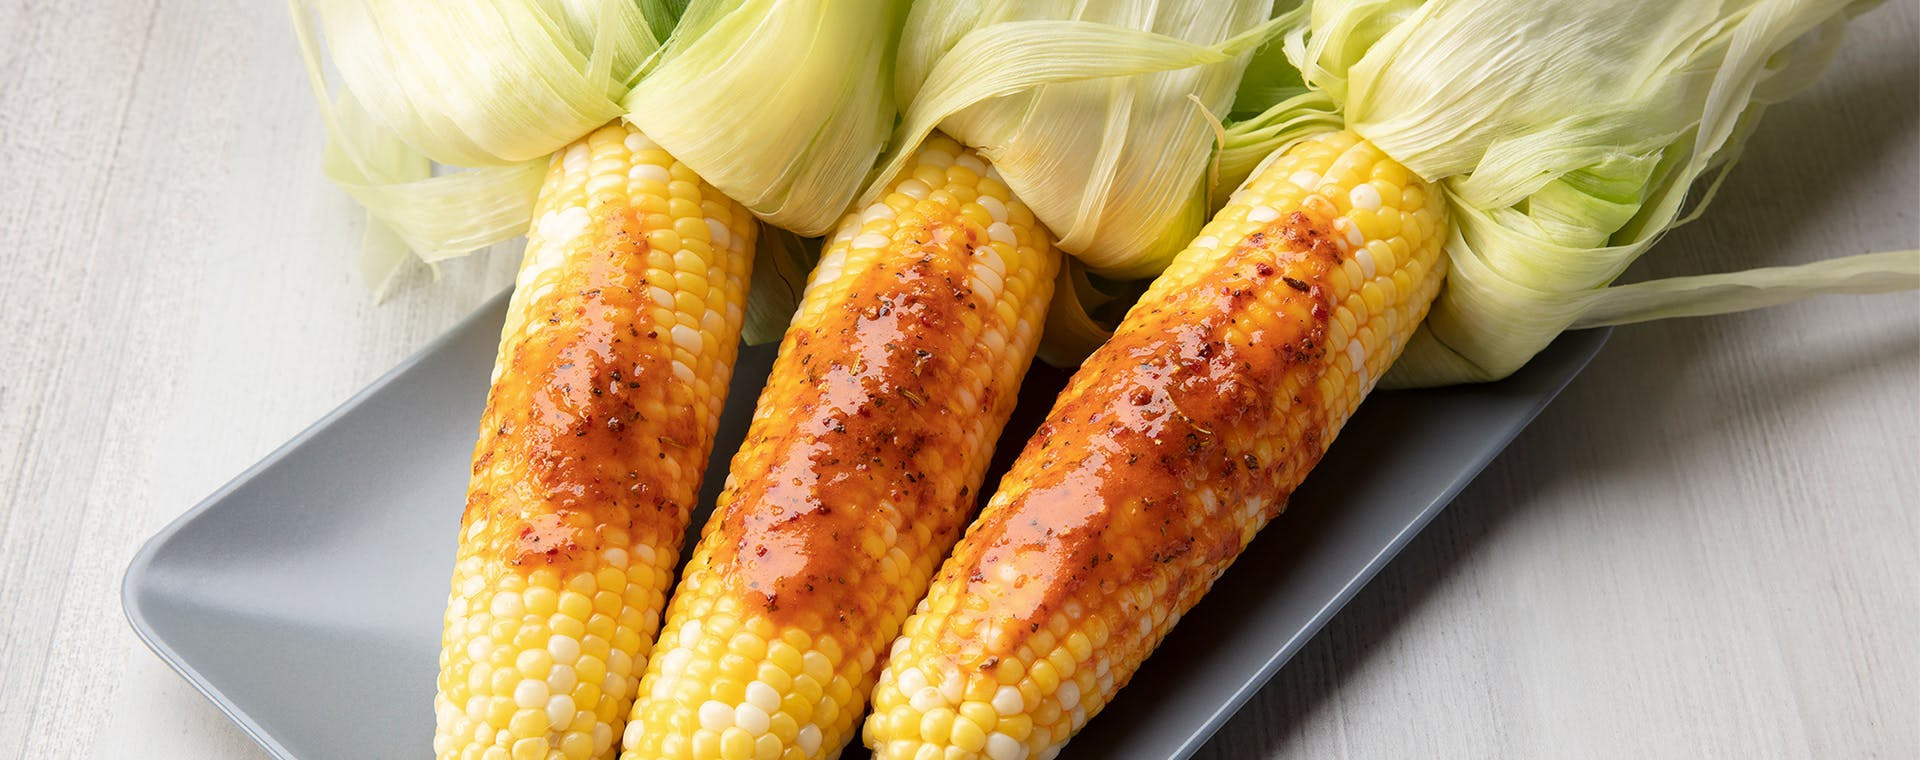 Sweet Corn with Chili Lime flavored butter